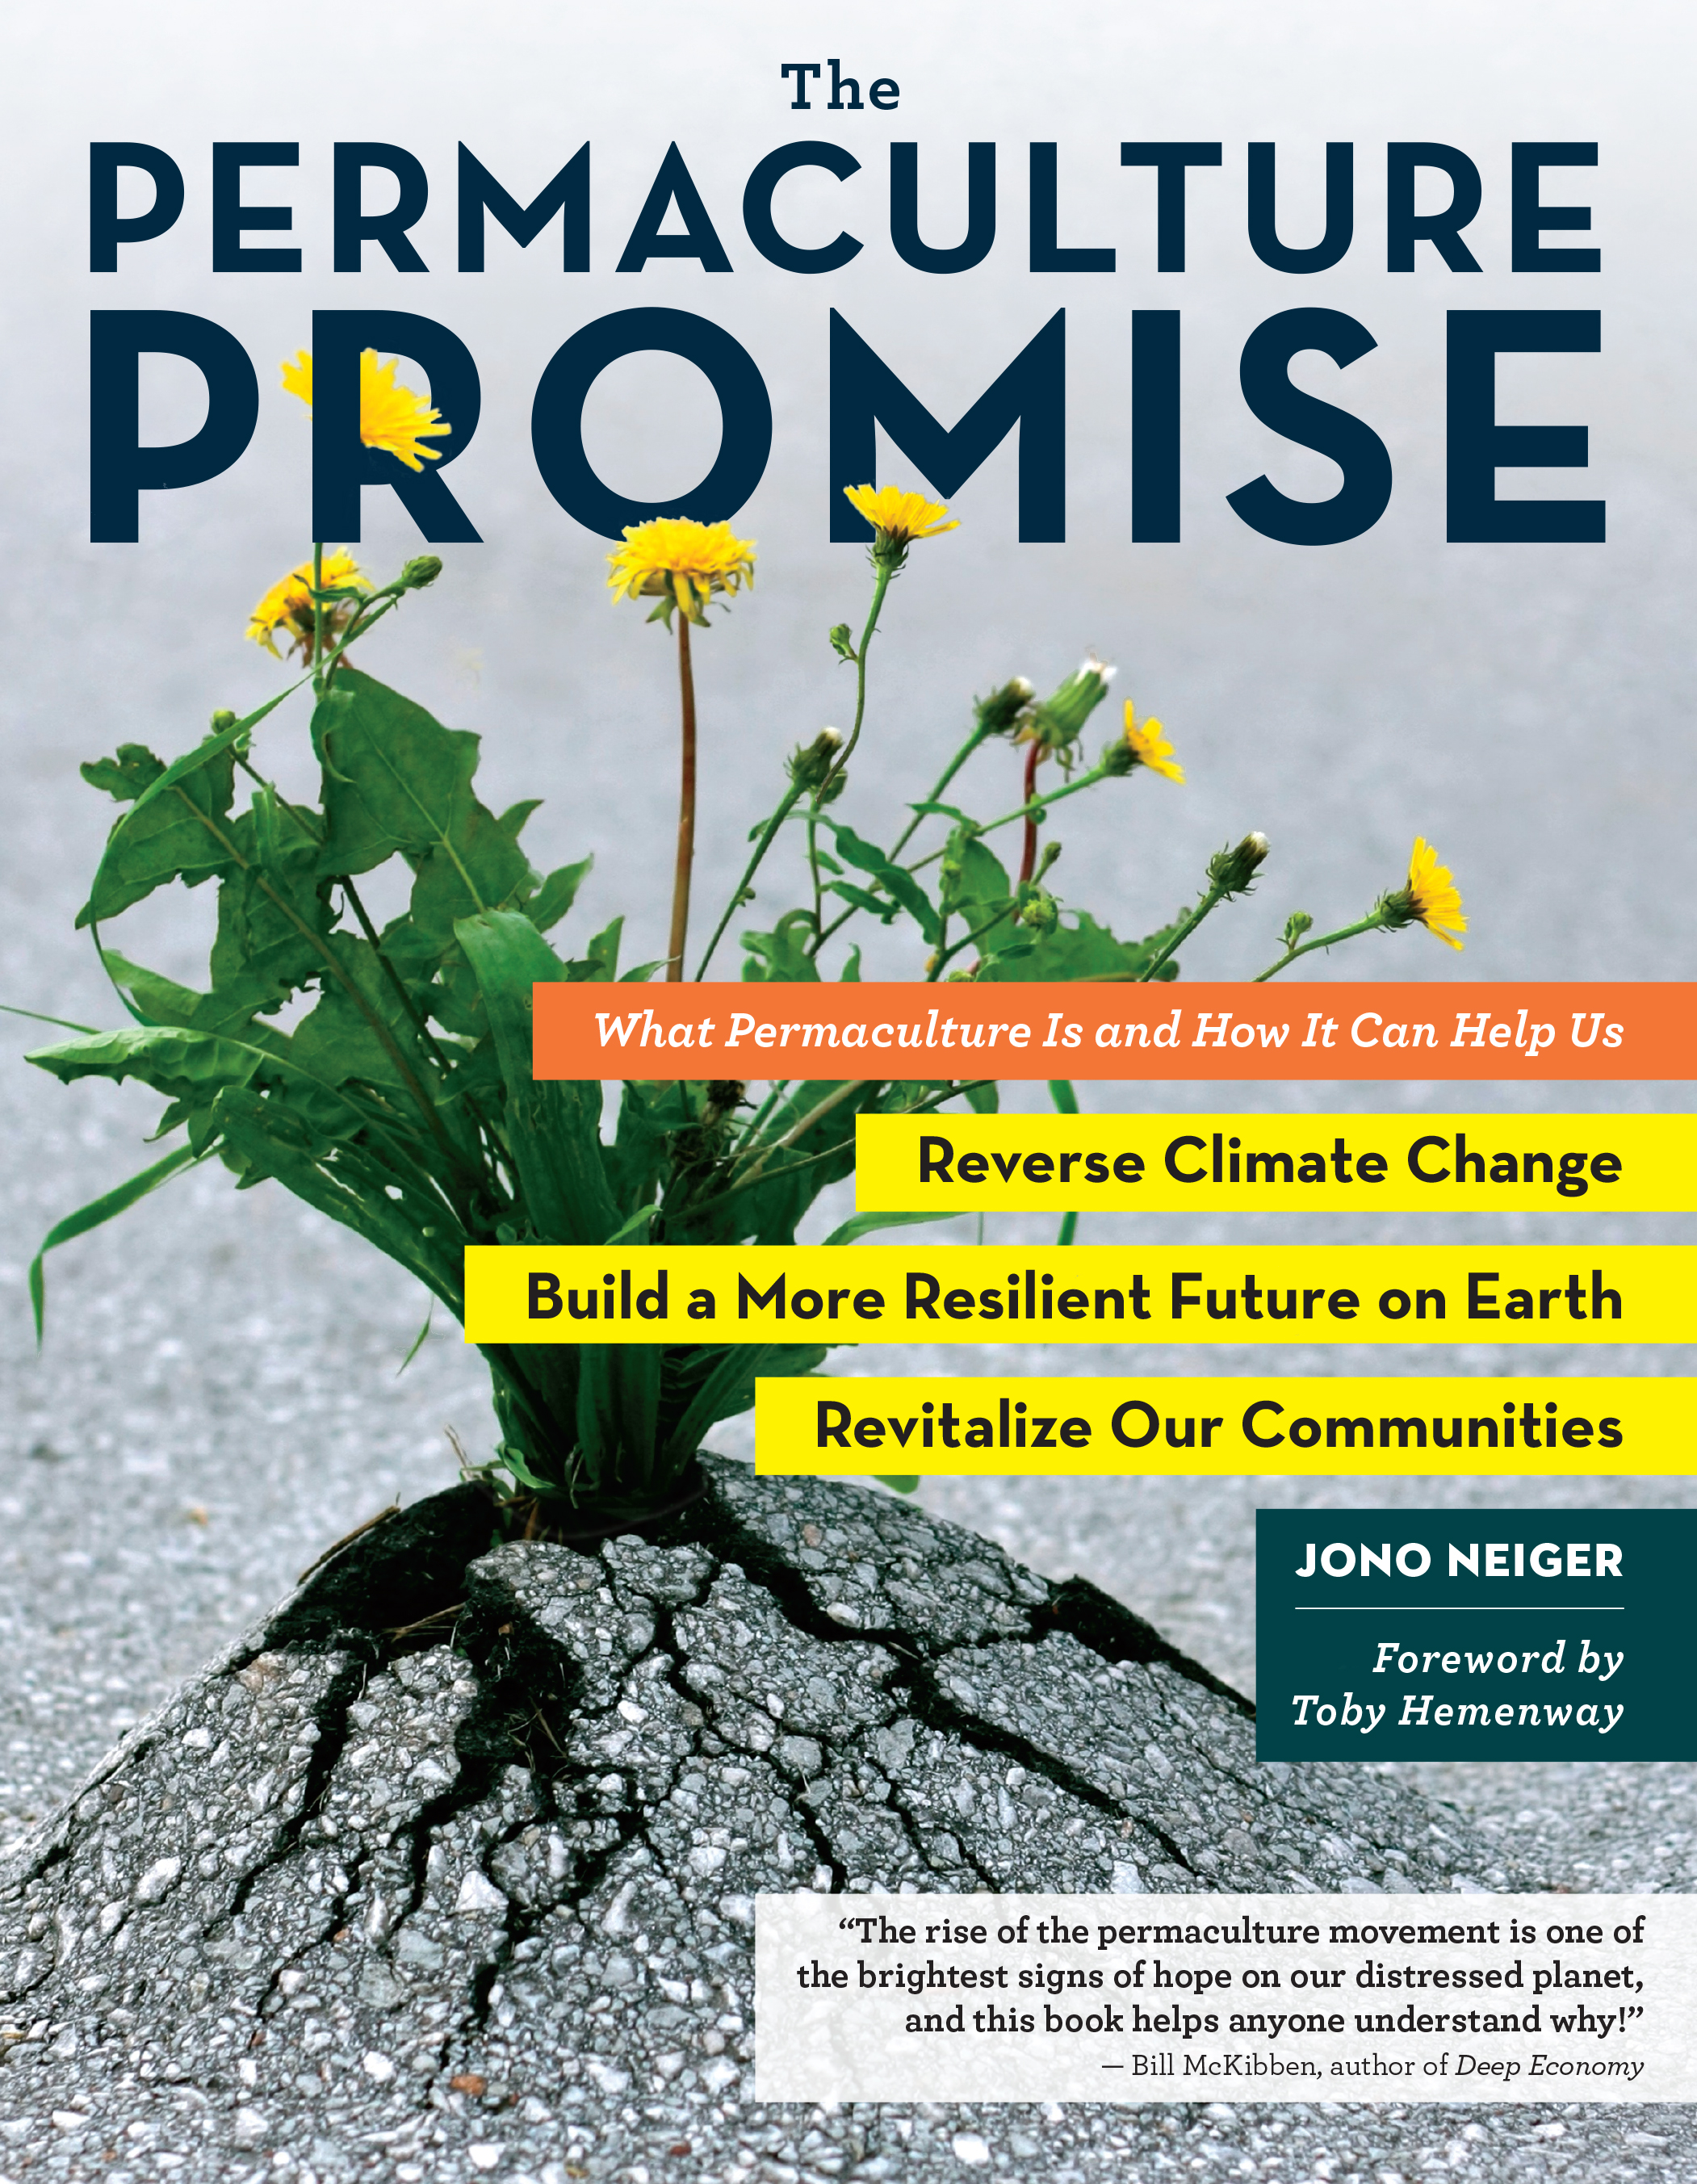 The Permaculture Promise What Permaculture Is and How It Can Help Us Reverse Climate Change, Build a More Resilient Future on Earth, and Revitalize Our Communities - Jono Neiger